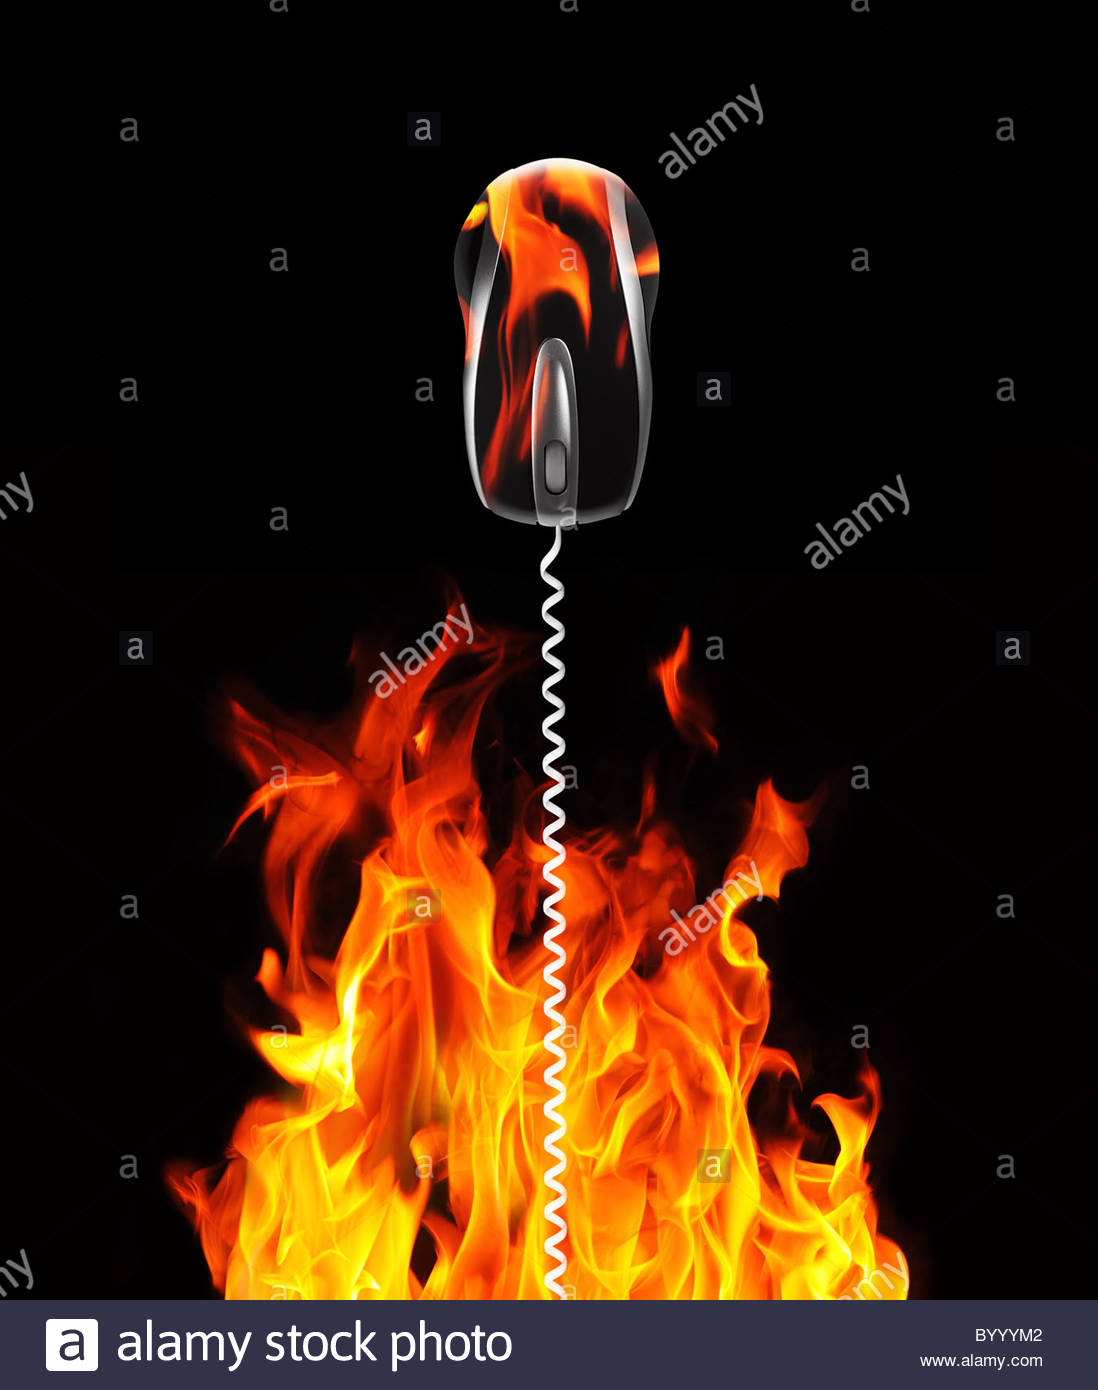 mouse cable and flames - Stock Image